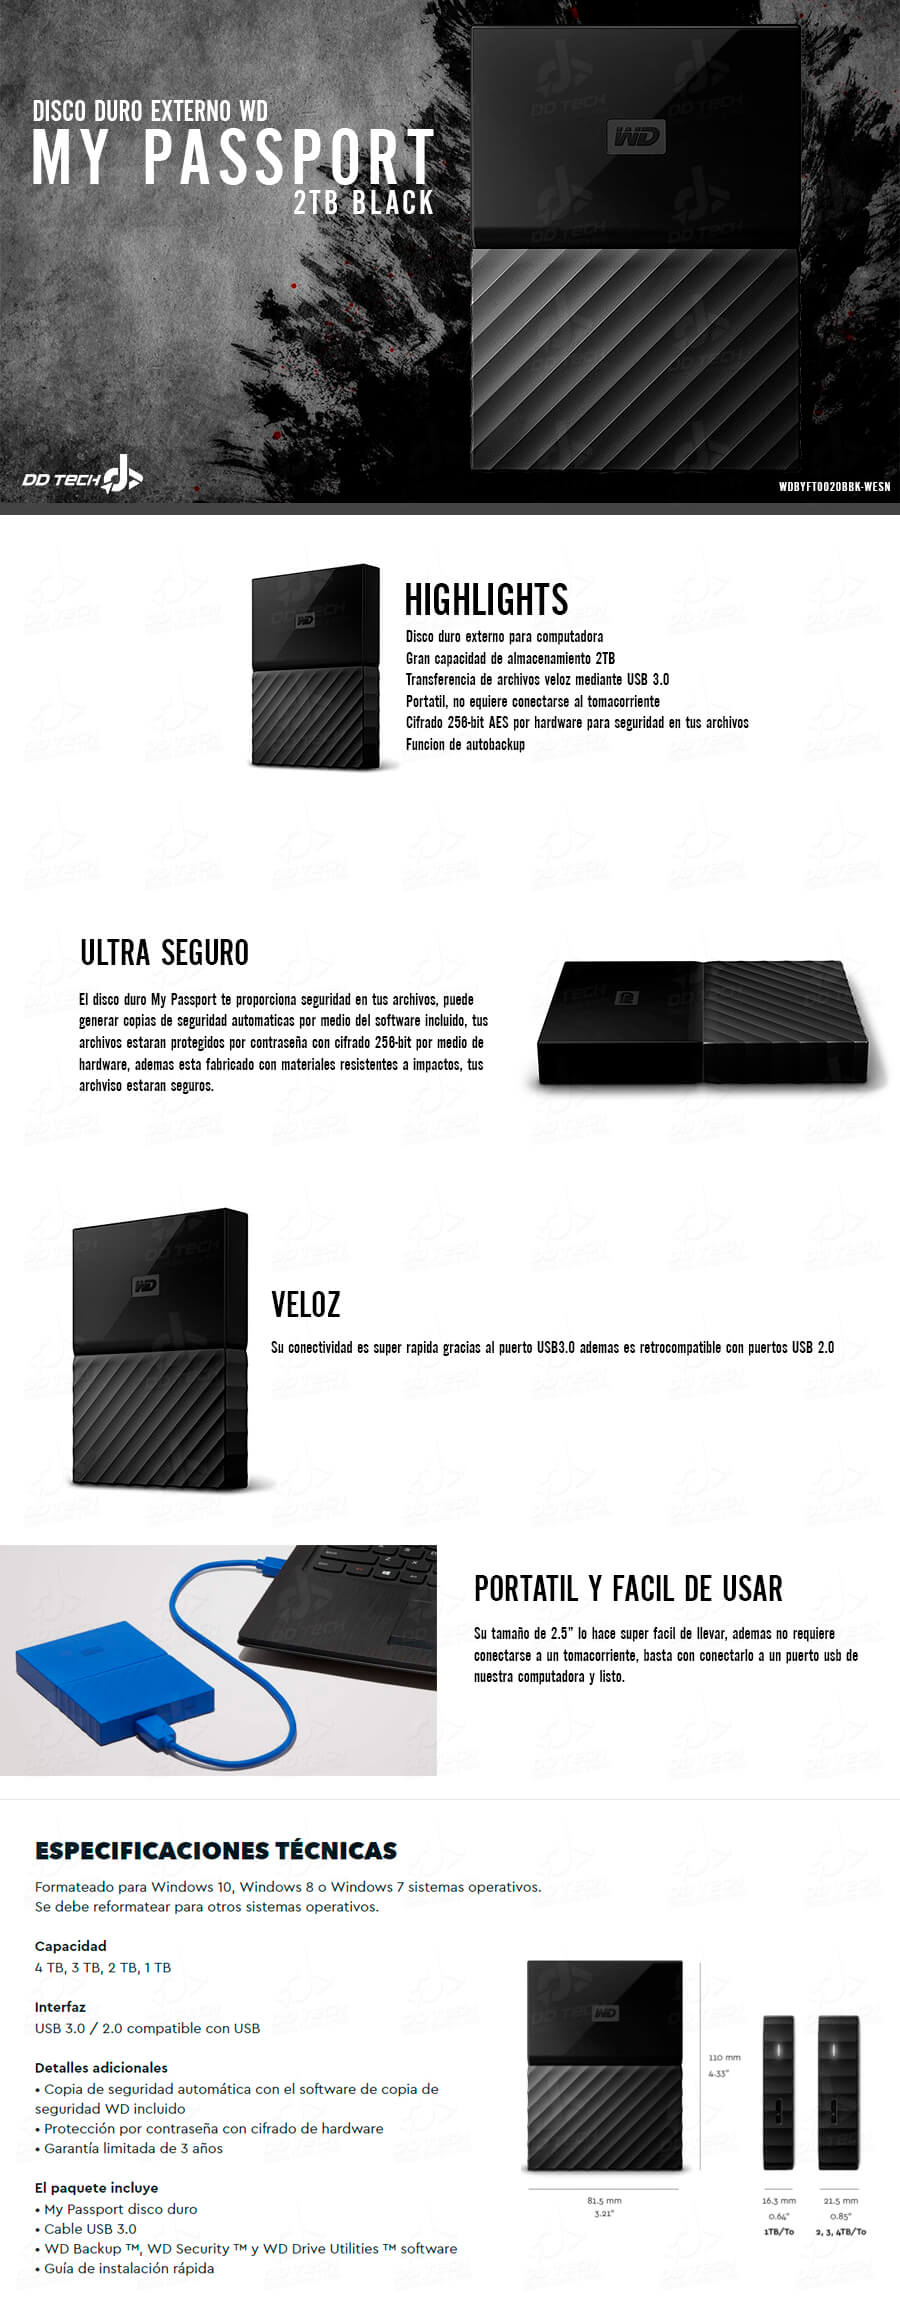 Disco Duro Externo 2tb Wd My Passport Black Portatil Usb 3